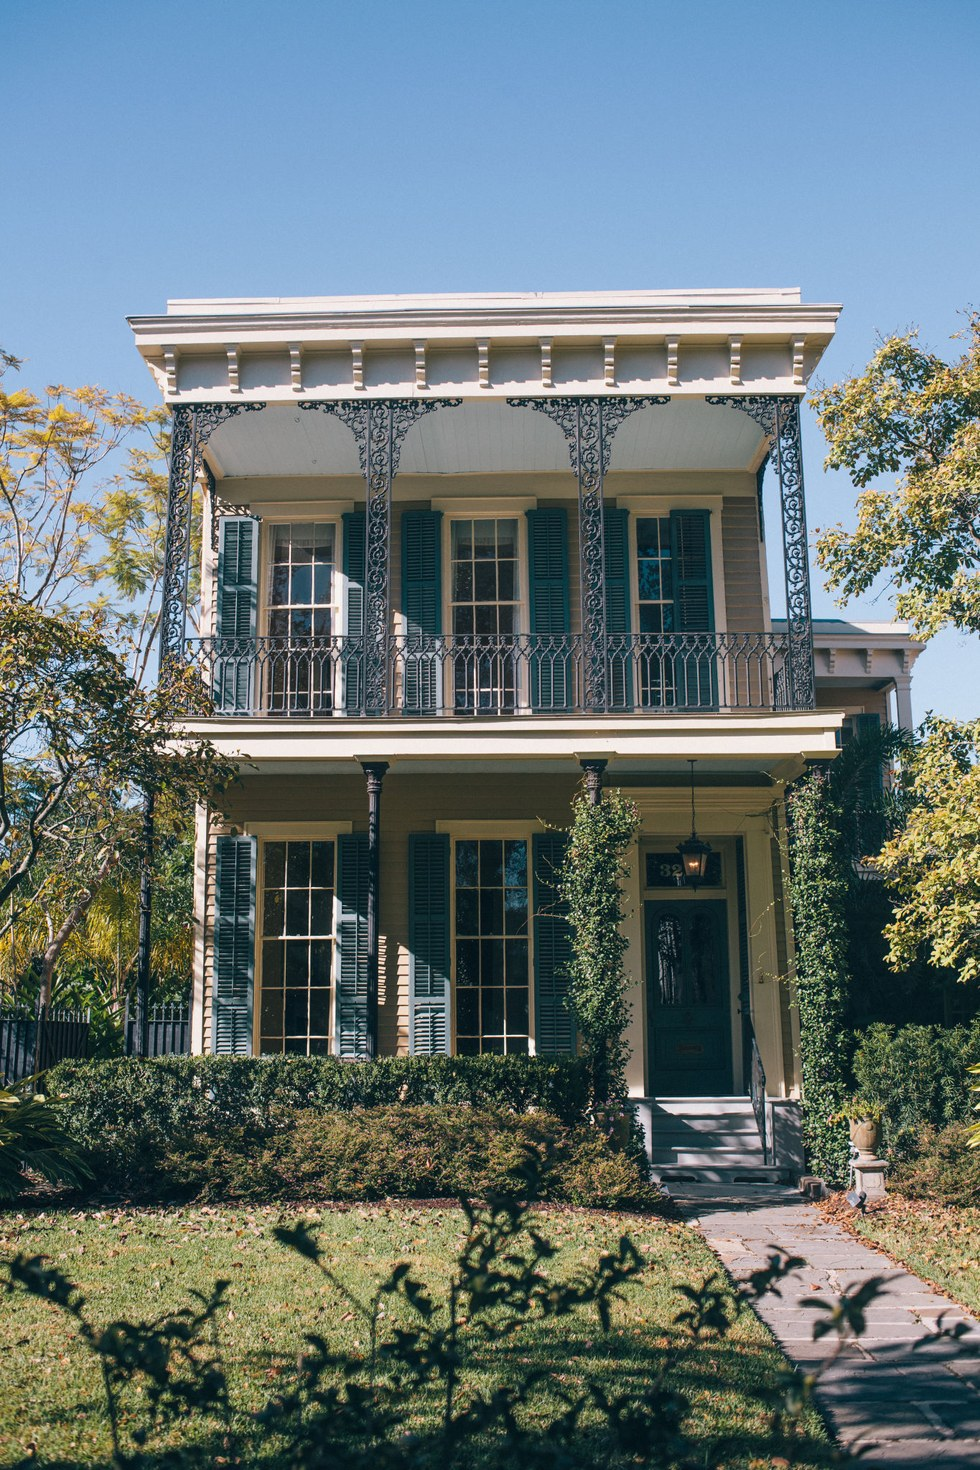 Garden District architecture